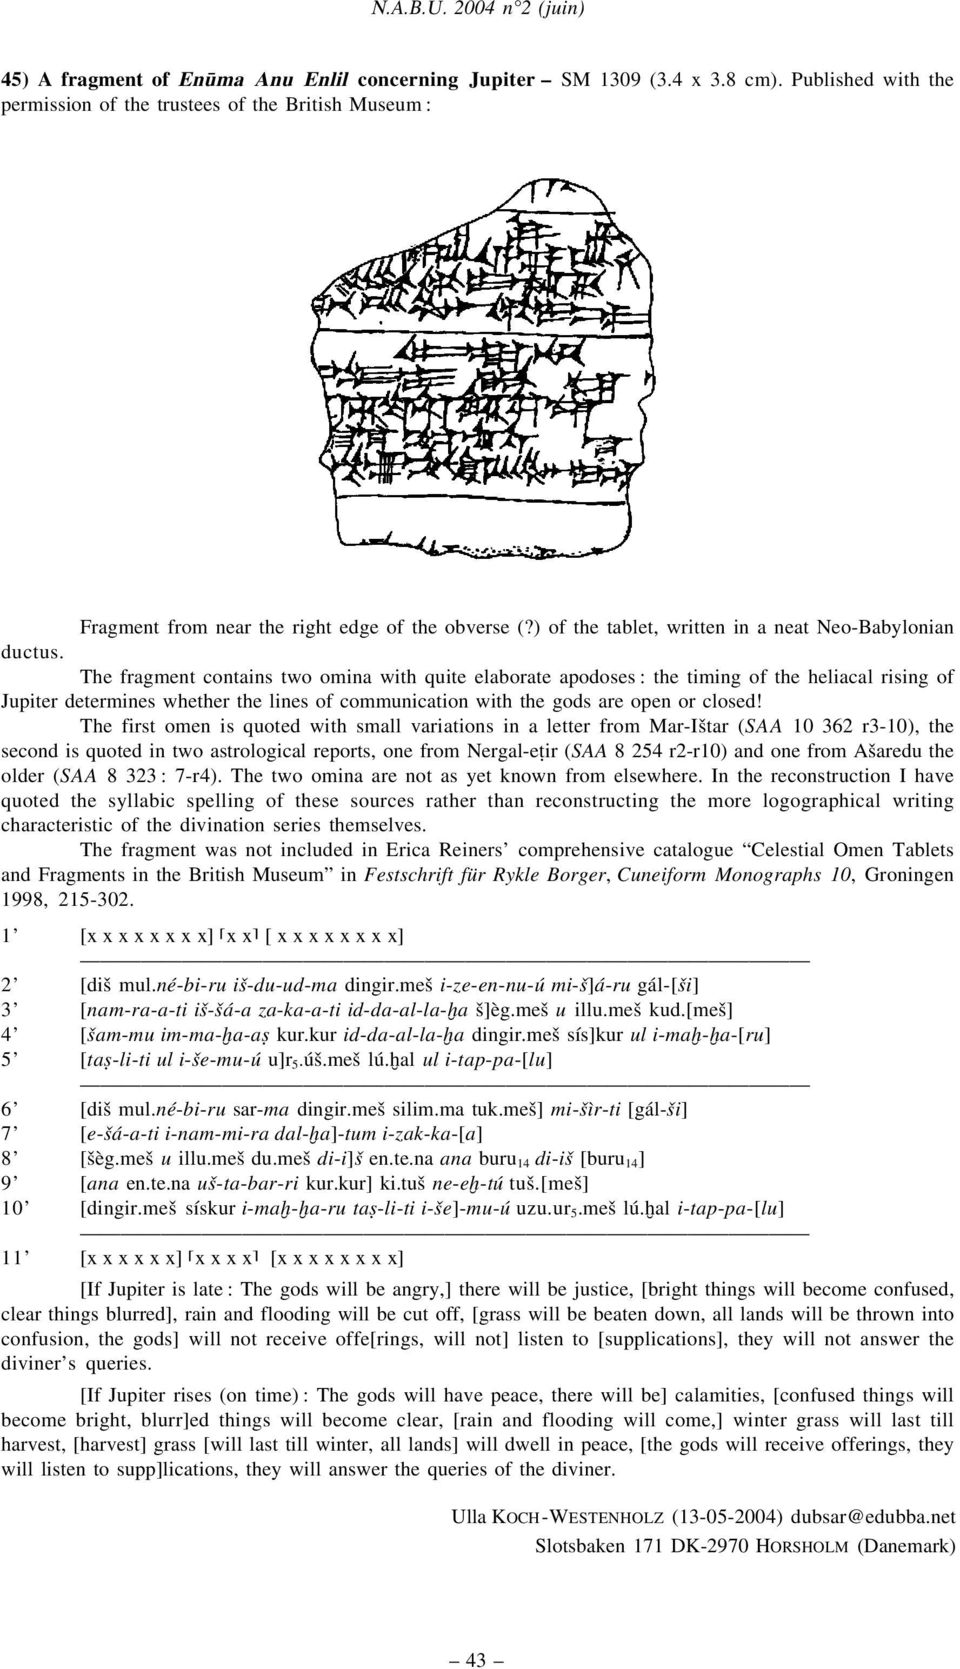 The fragment contains two omina with quite elaborate apodoses: the timing of the heliacal rising of Jupiter determines whether the lines of communication with the gods are open or closed!